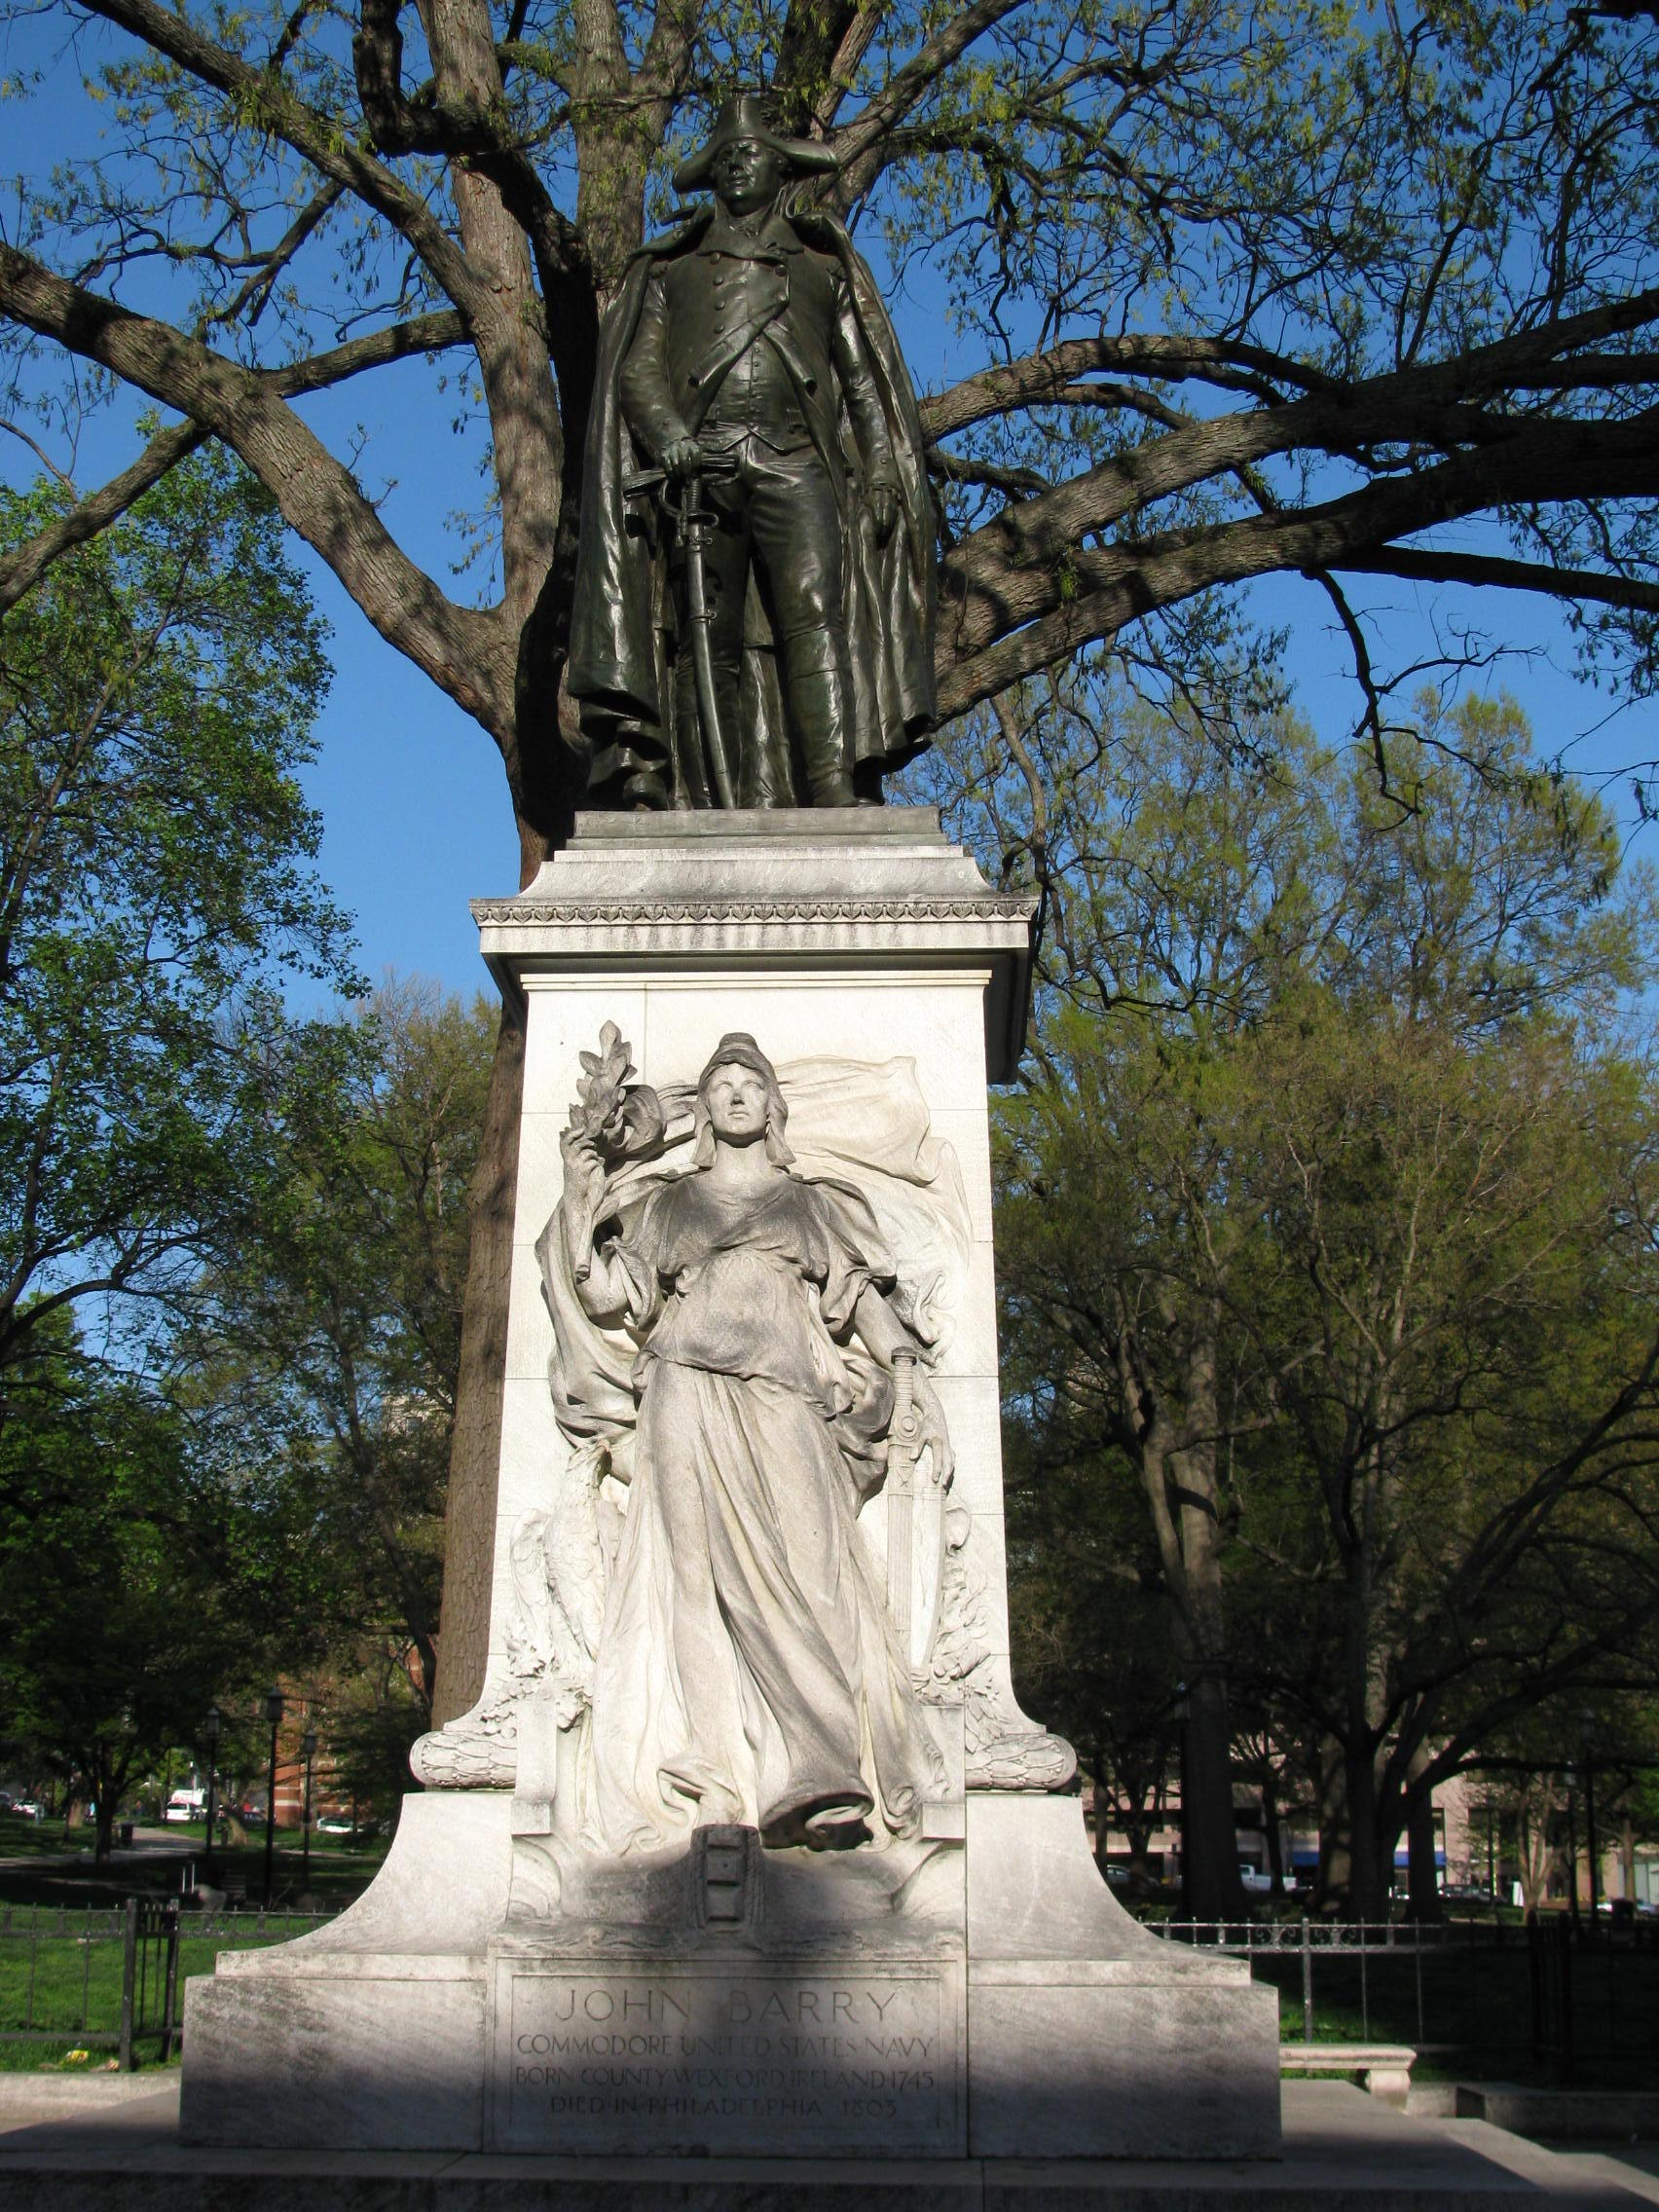 Commodore John Barry, (sculpture). Commissioned 1910, modeled 1911 to 1912, cast 1913, and installed March 26, 1914. Dedicated May 16, 1914.